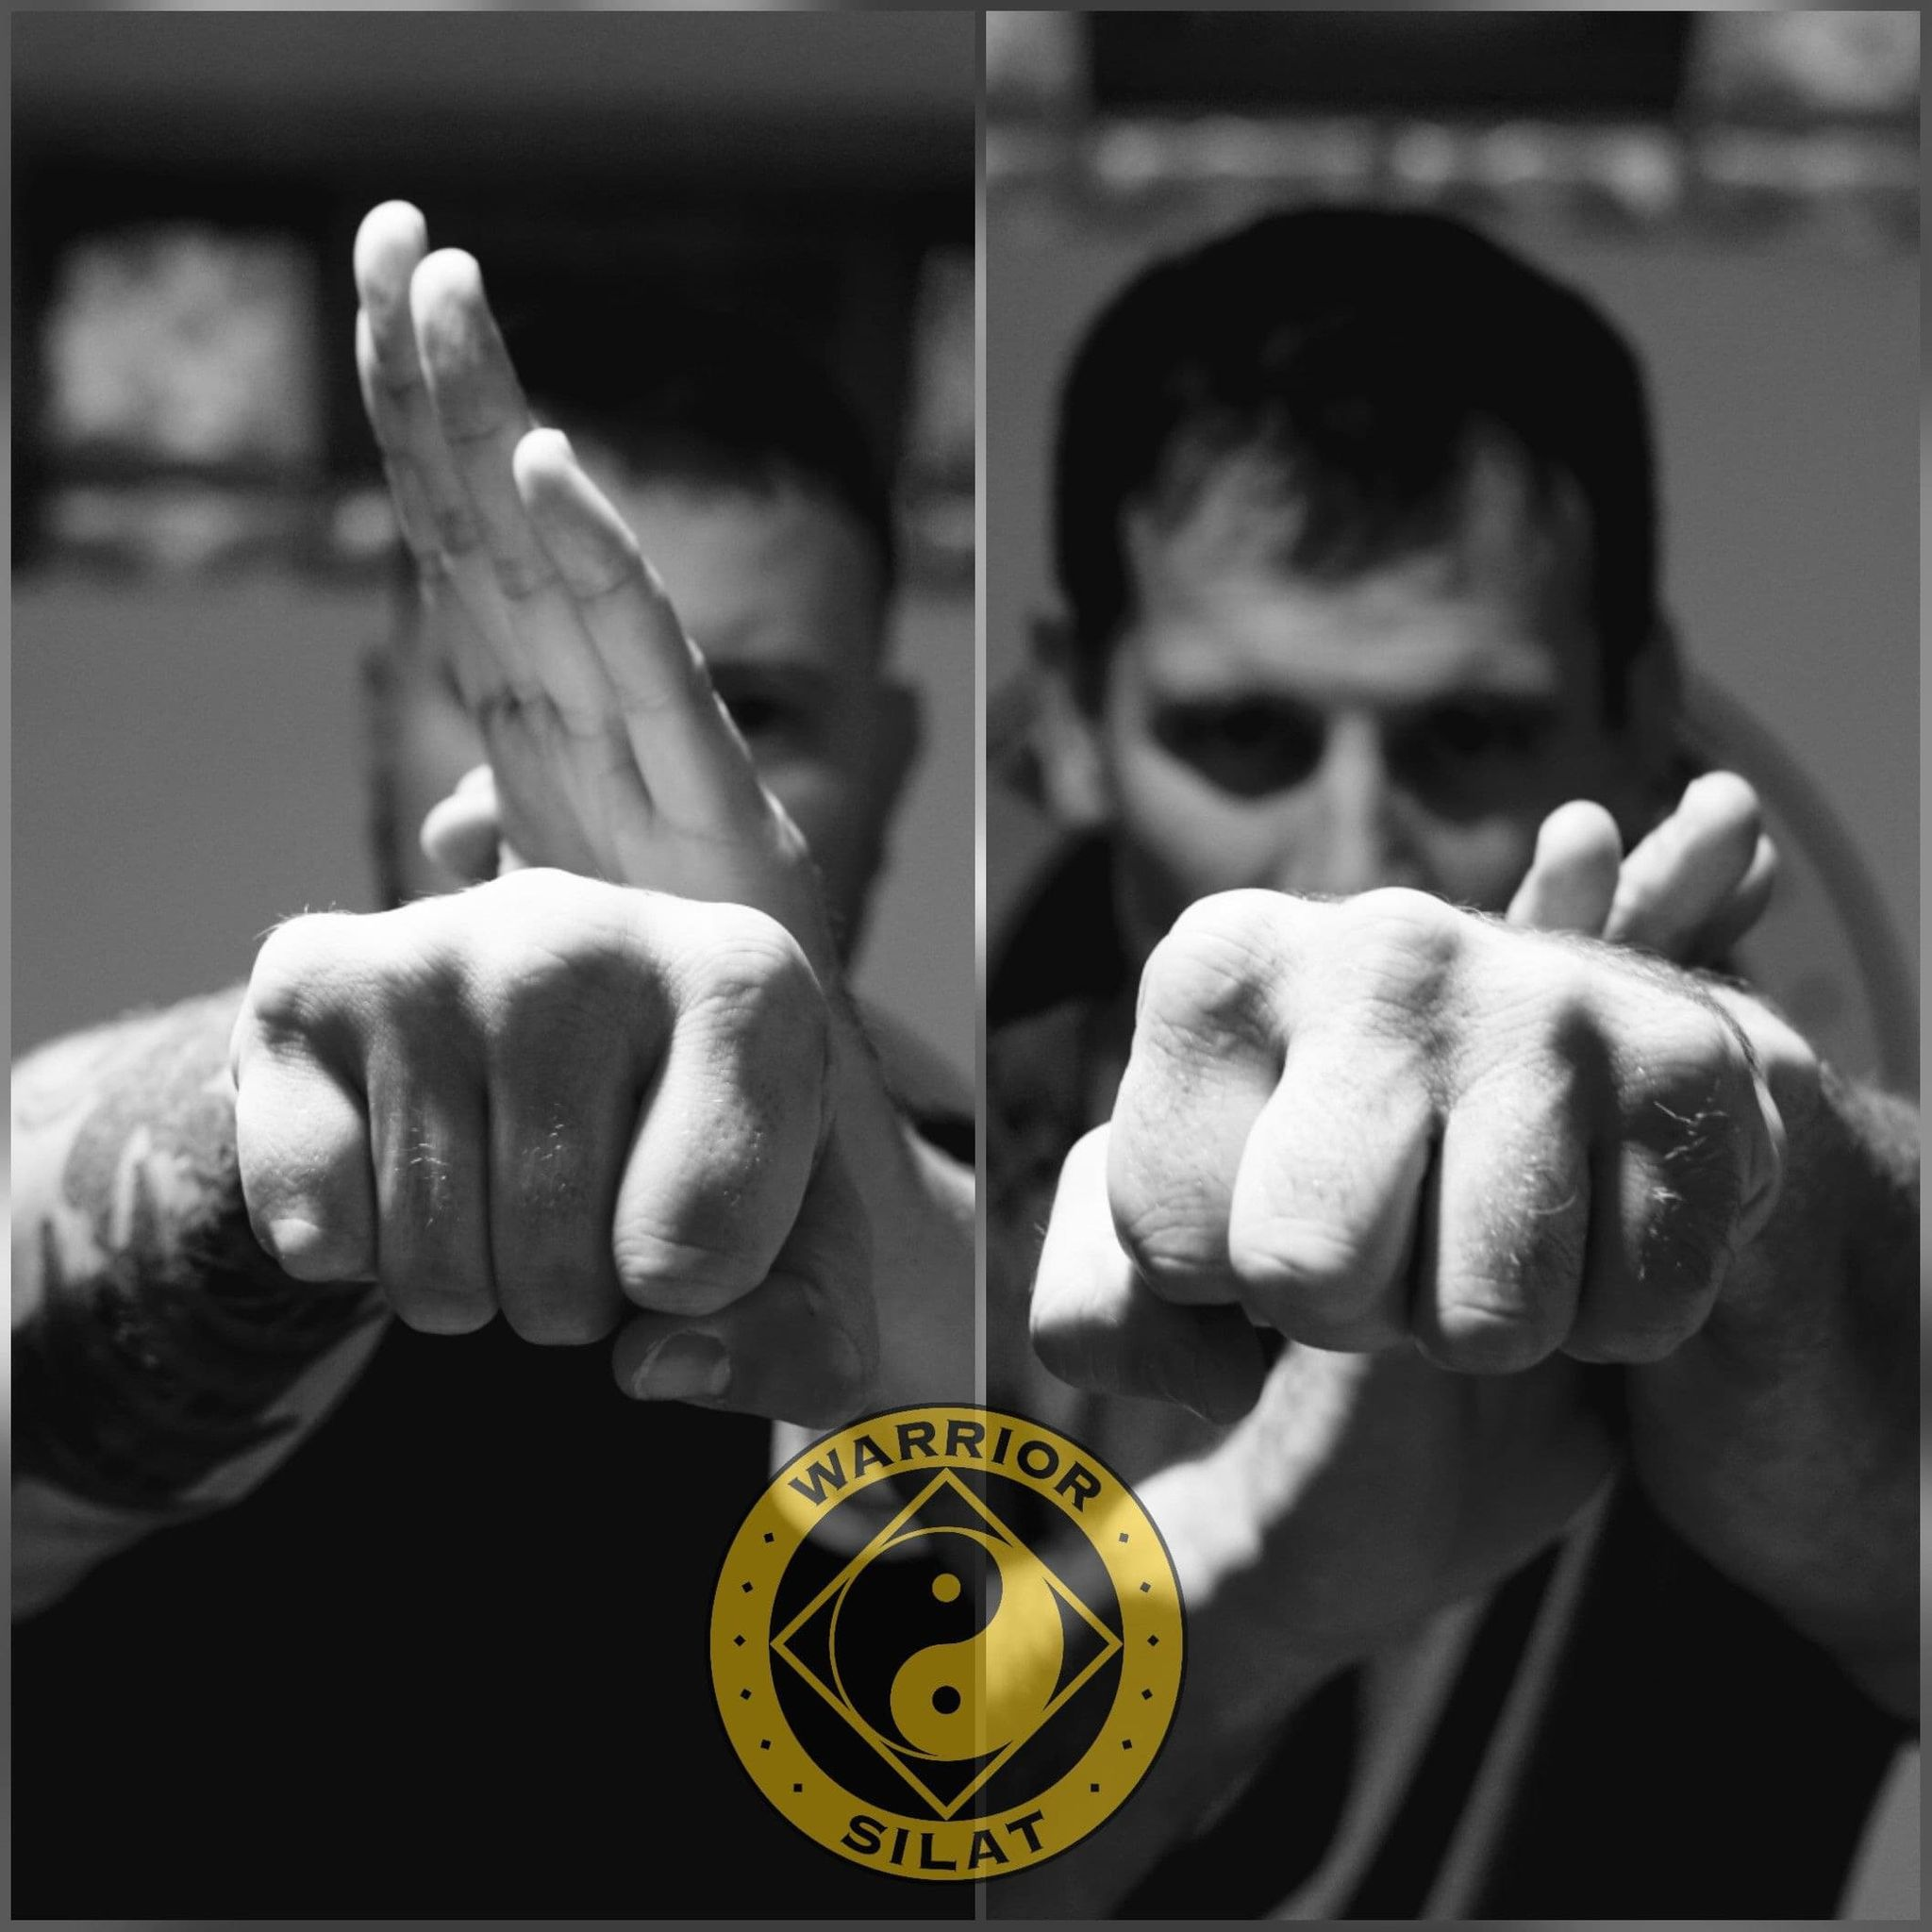 Warrior silat about page header